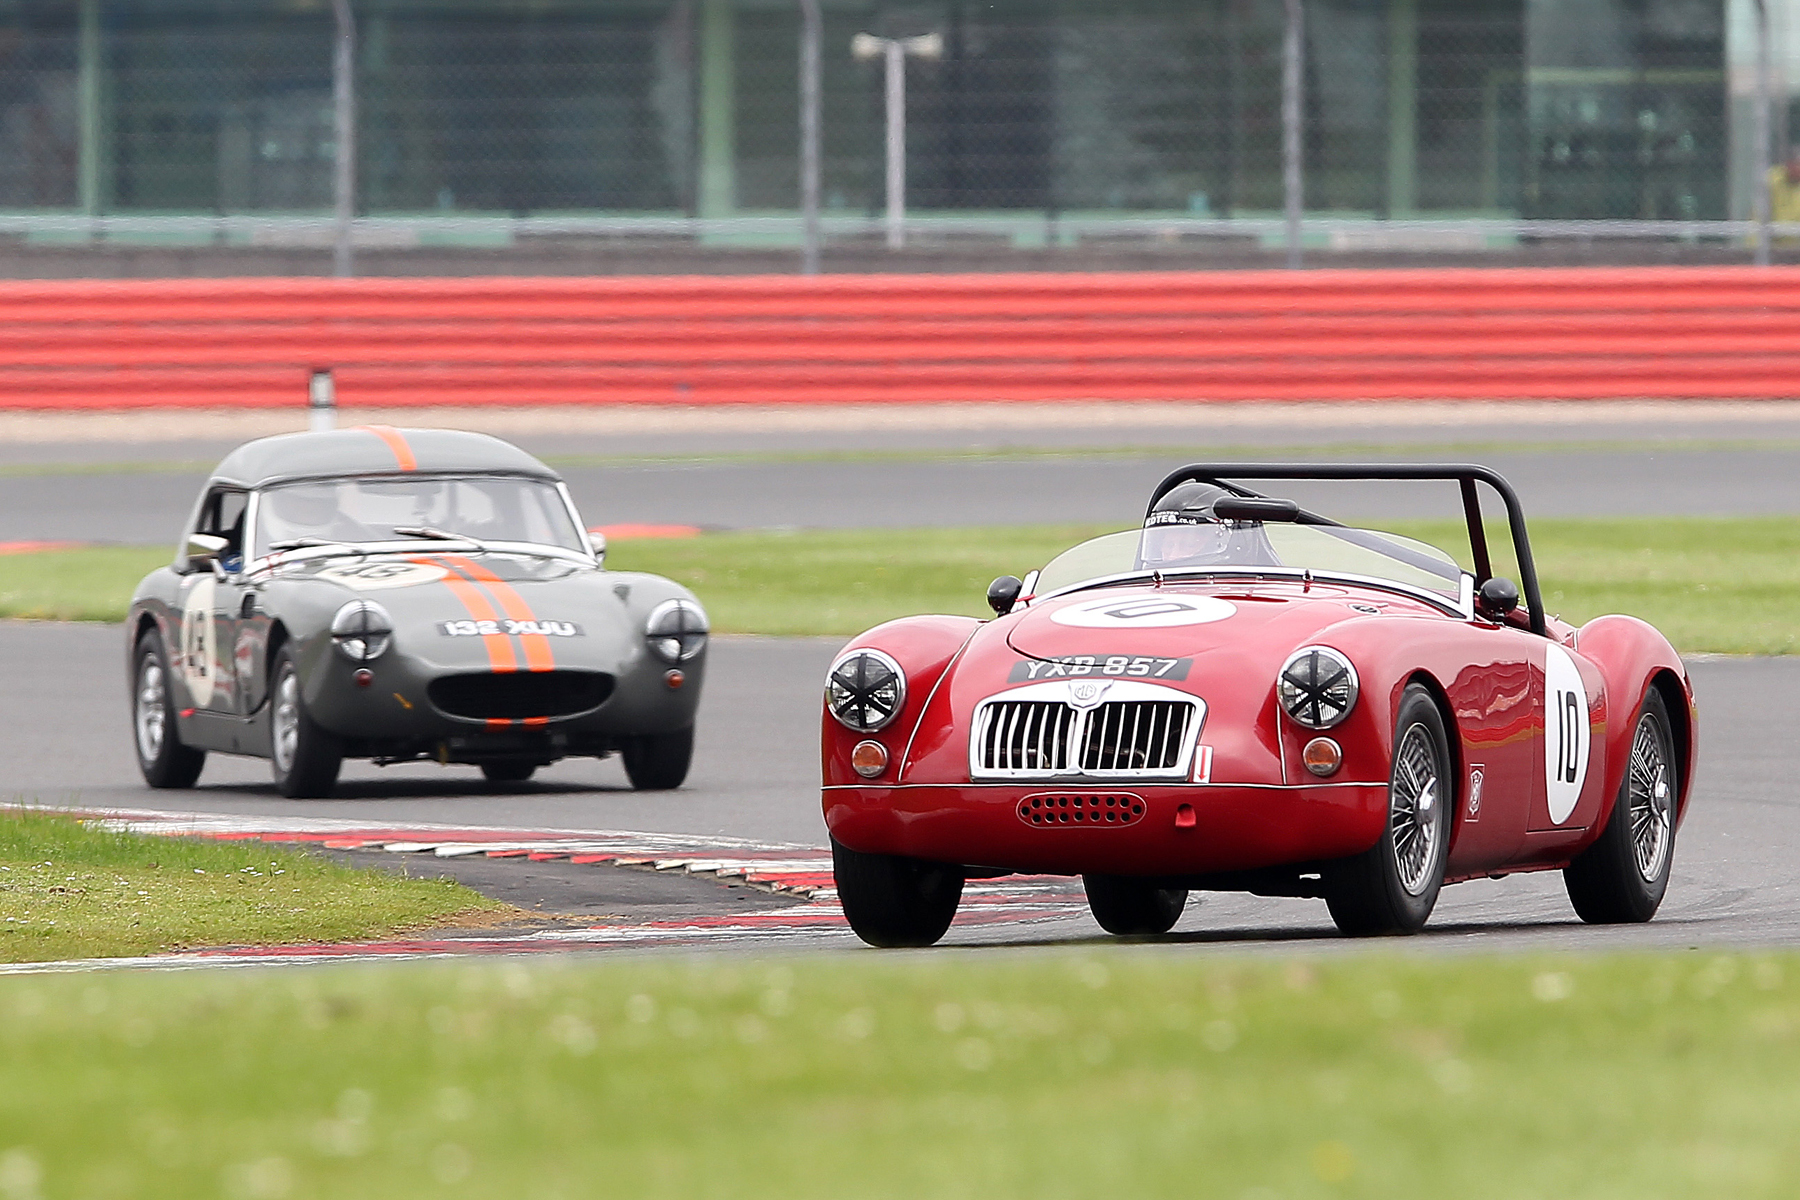 Terry Bryant's MGA roadster. Behind is Jim Mackie's Sprite mentioned in a previous caption                         Photo - Mick Walker